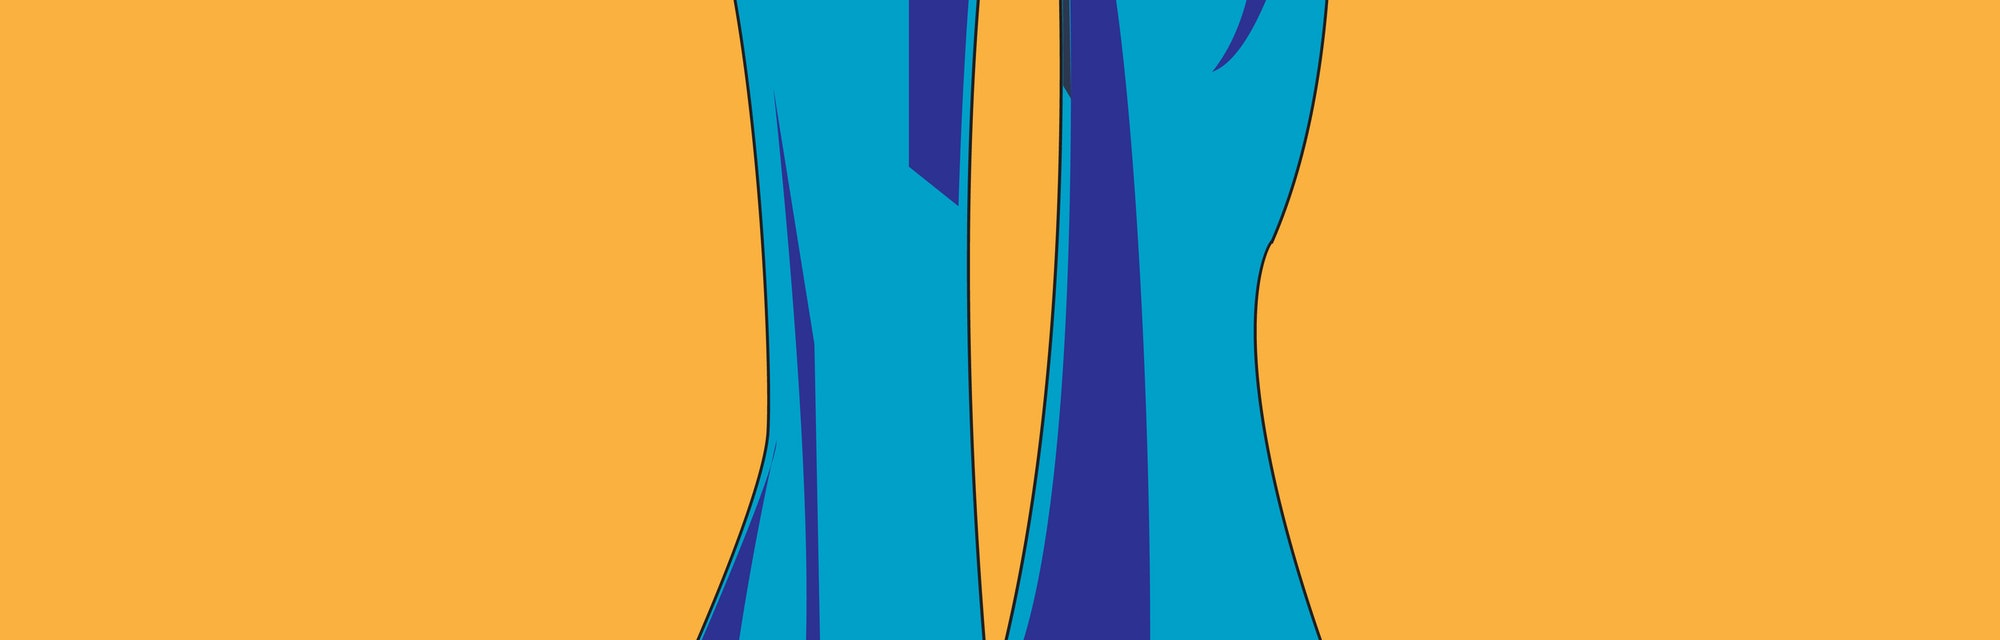 Trousers flared. 1970s fashion. Blue jeans on a brown background. Vector illustration.